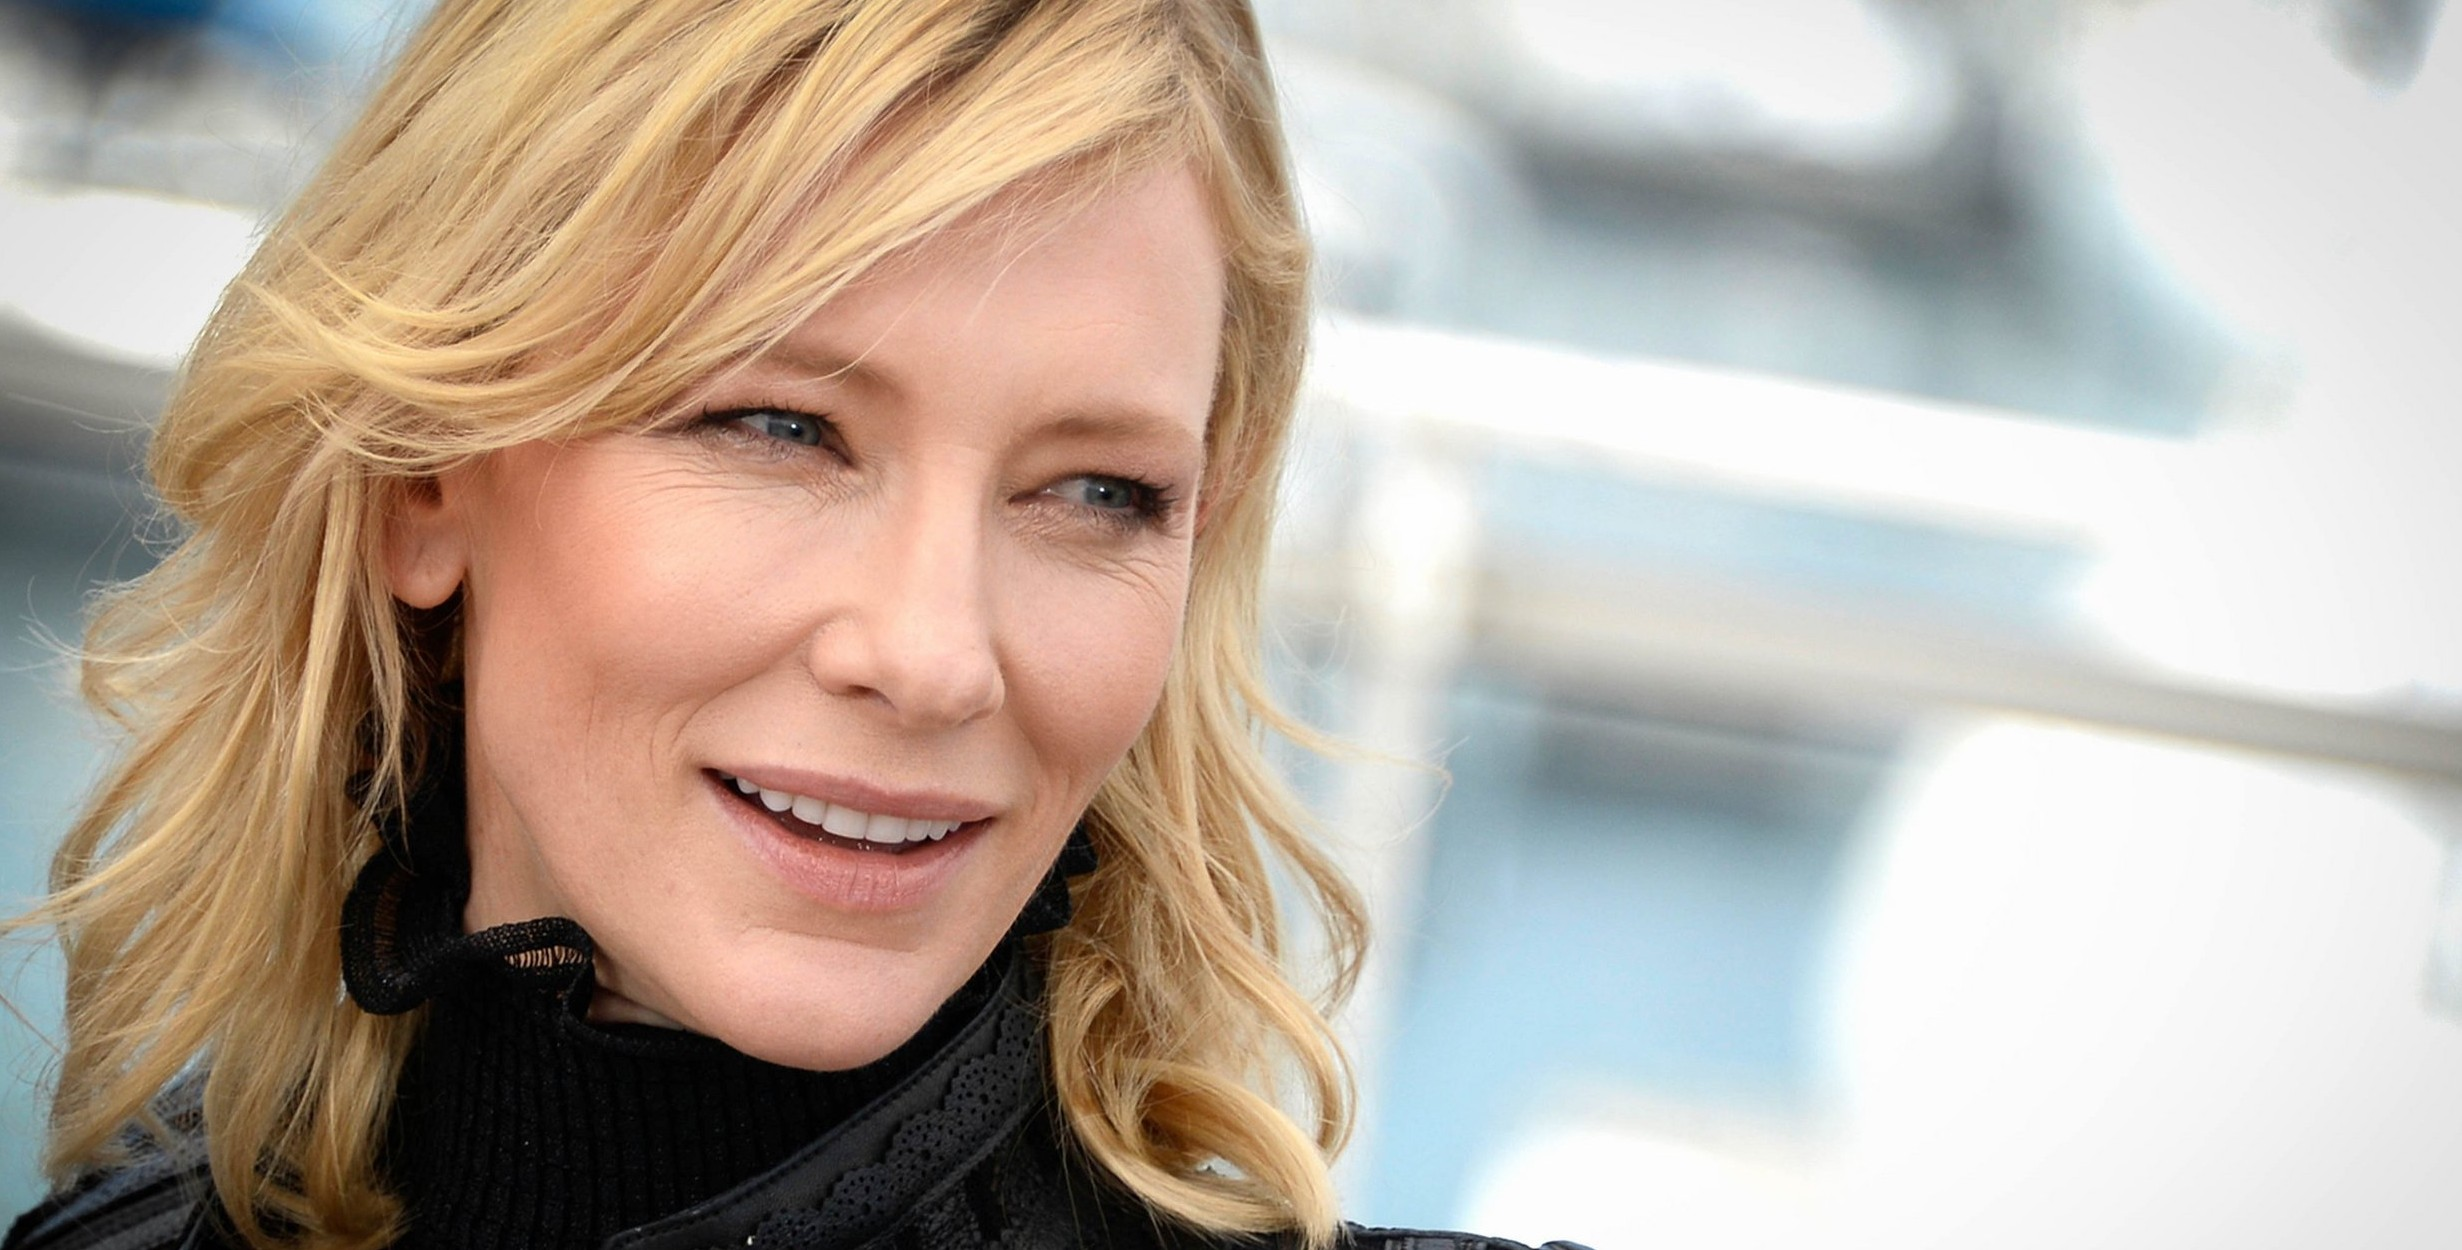 68th Cannes Film Festival – Carol Photocall, Premiere & Press Conference Photos